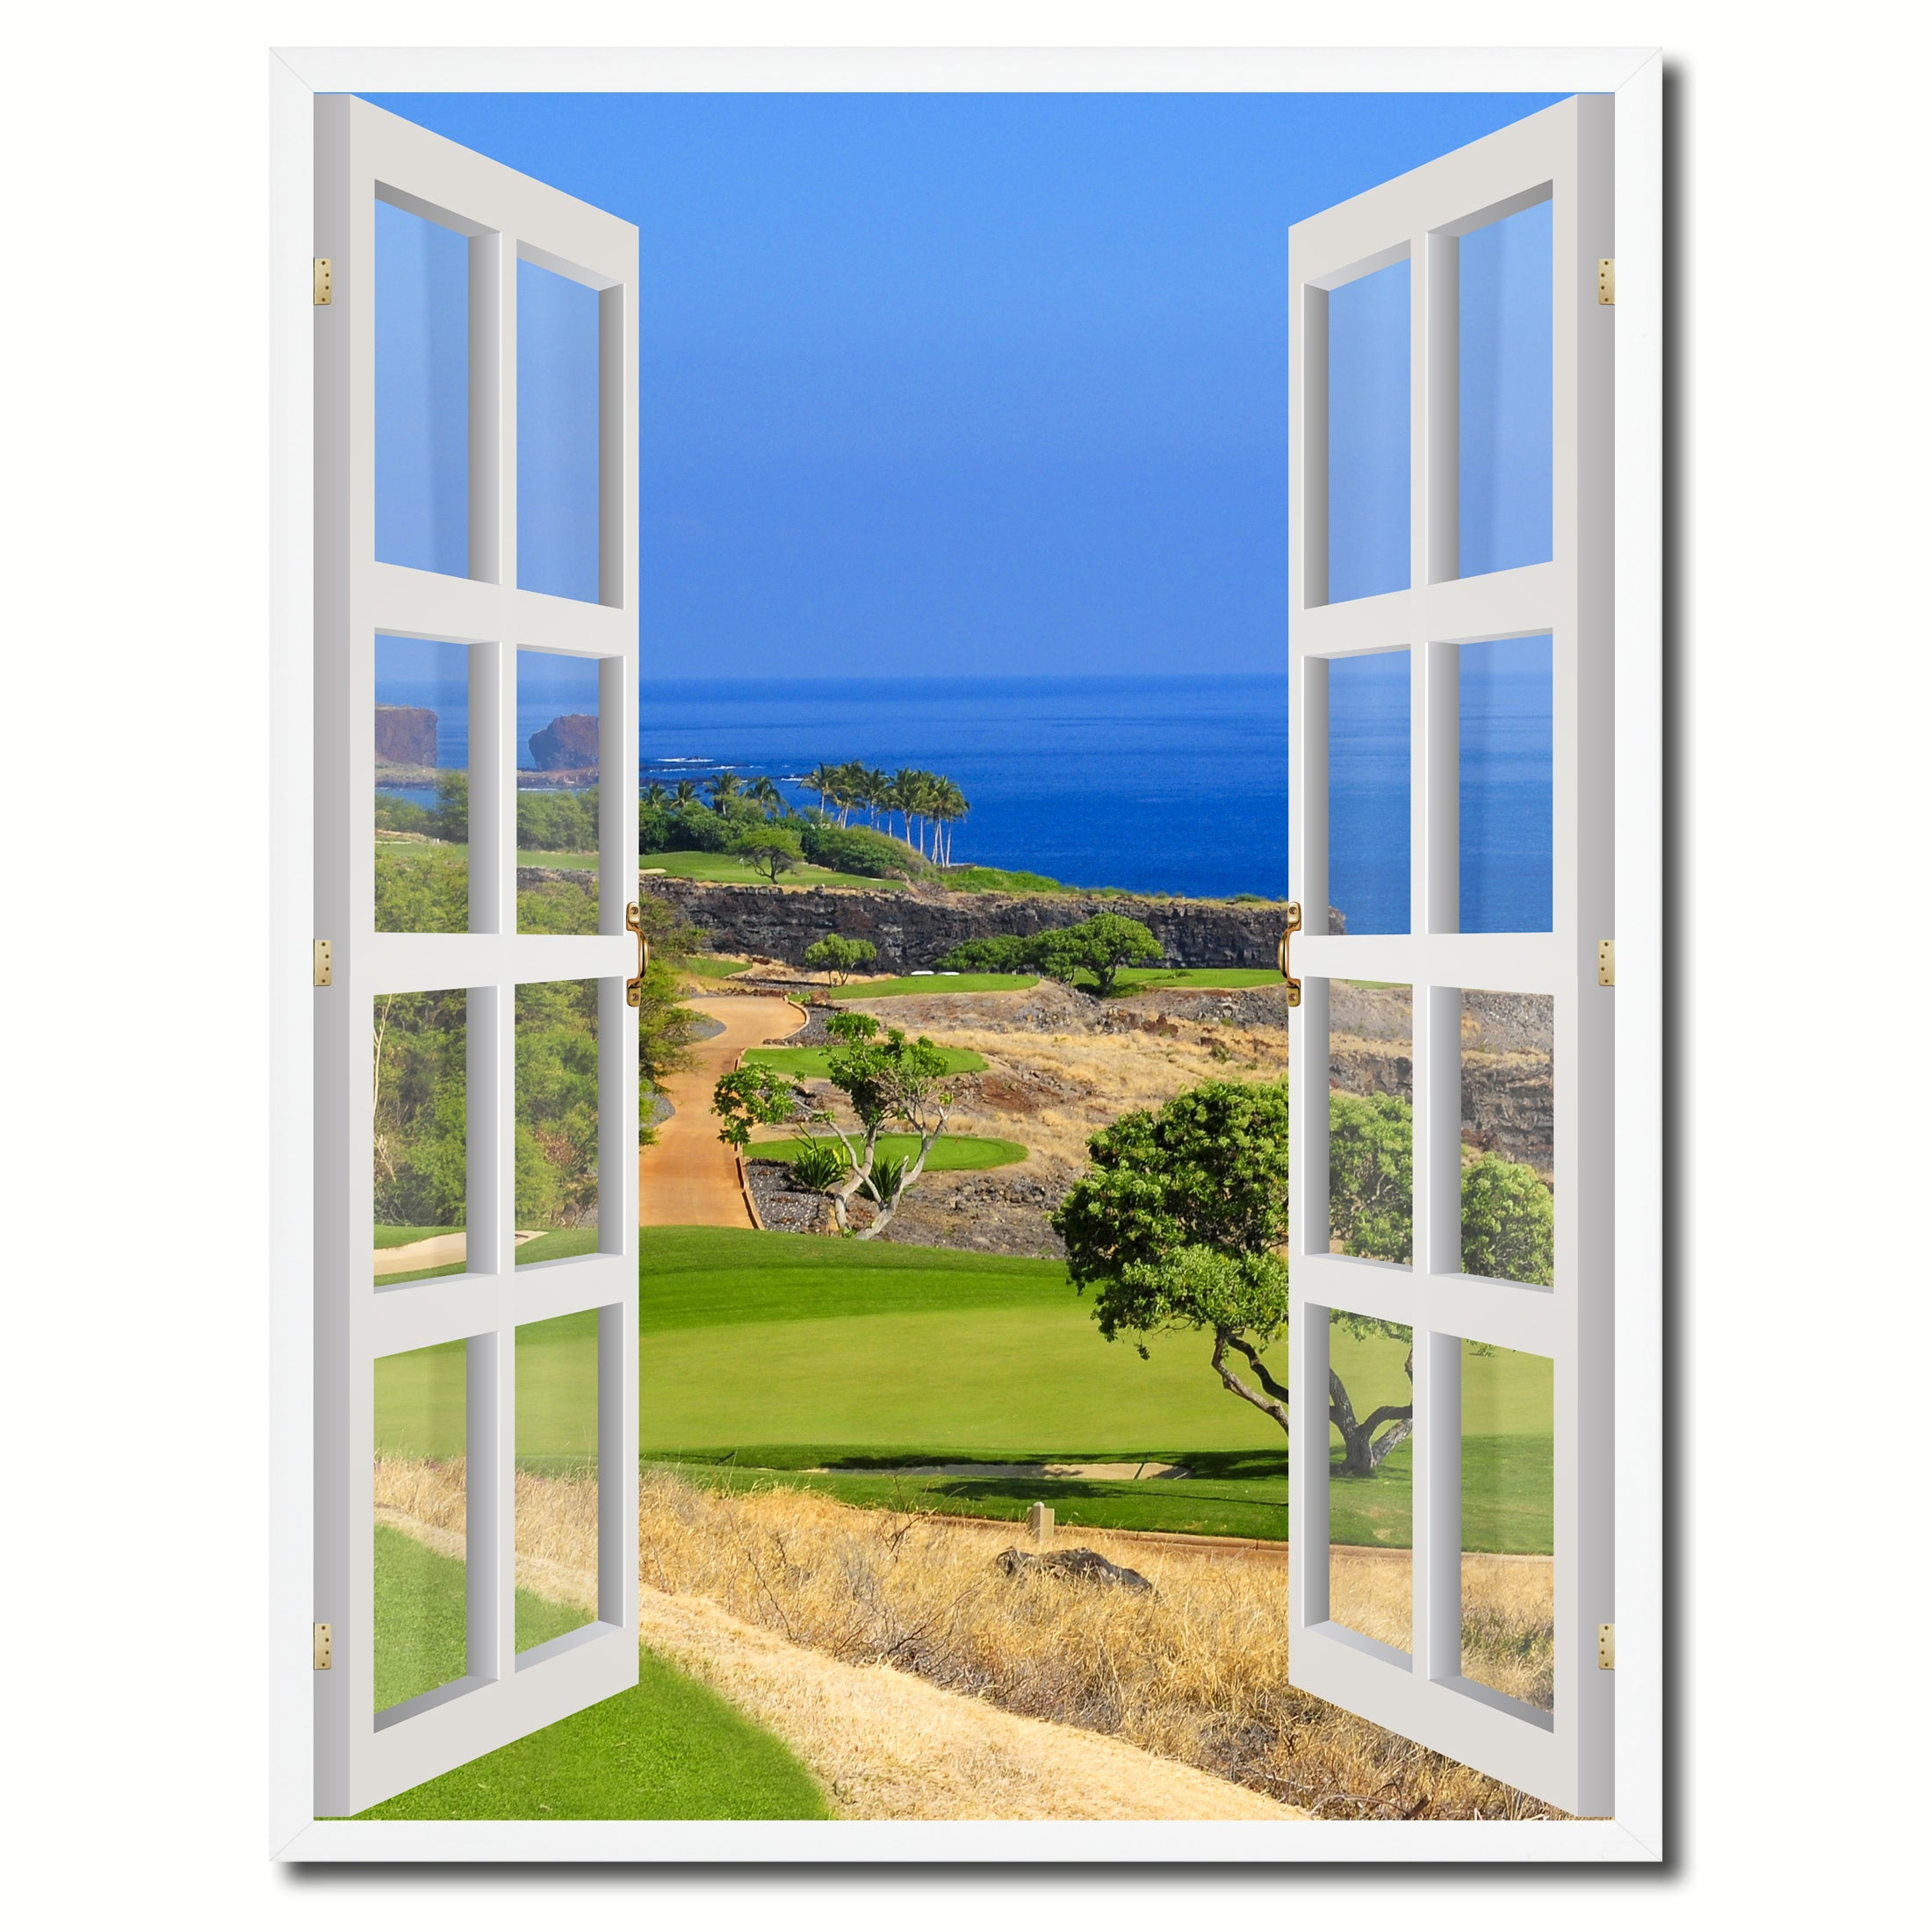 Coastal Golf Course View Picture French Window Canvas Print with Frame Gifts Home Decor Wall Art Collection